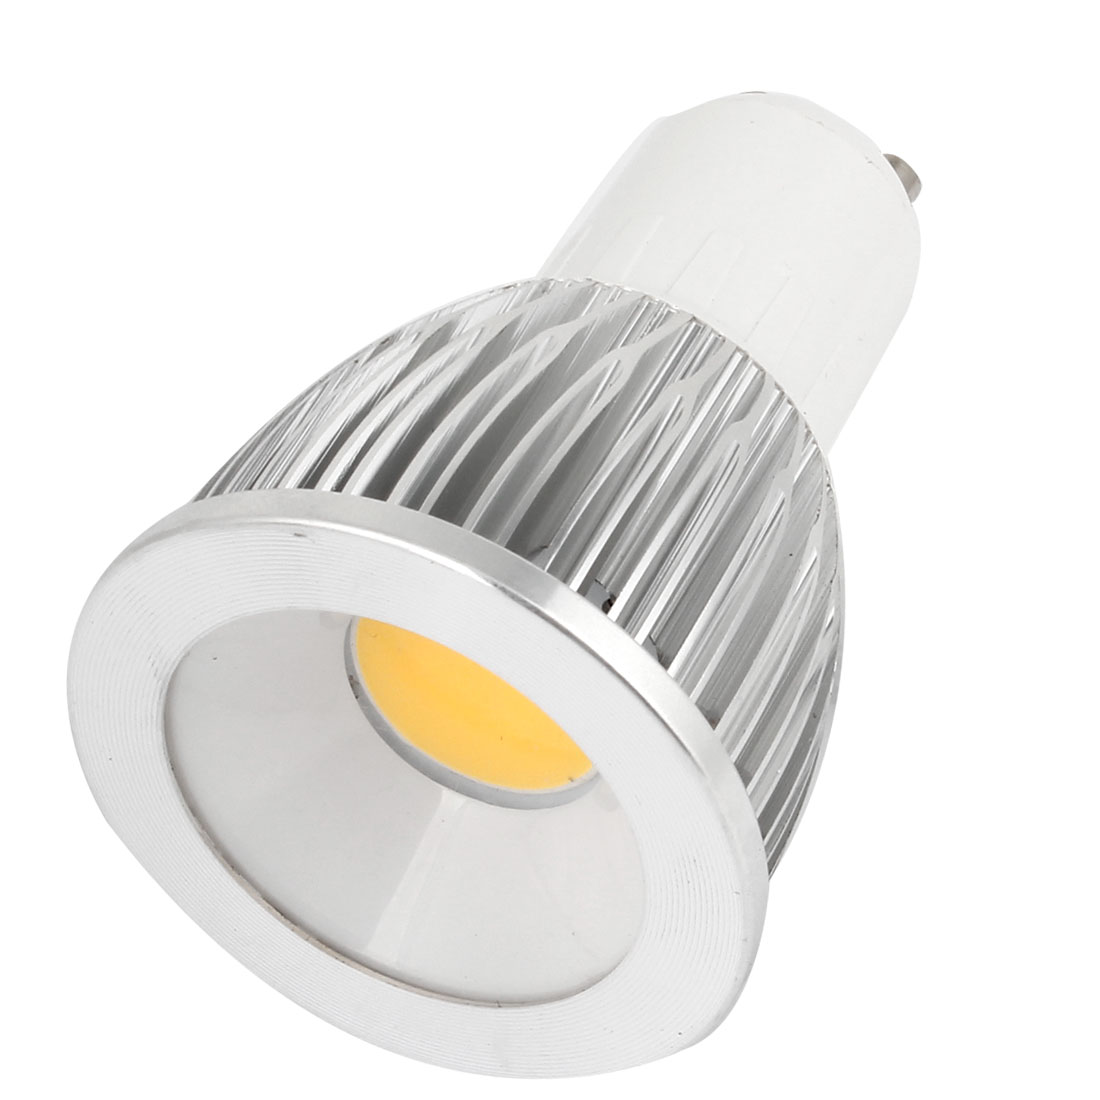 AC 85-265V 9W 600-650LM GU10 Non-dimmable Warm White Light COB LED Downlight Lamp